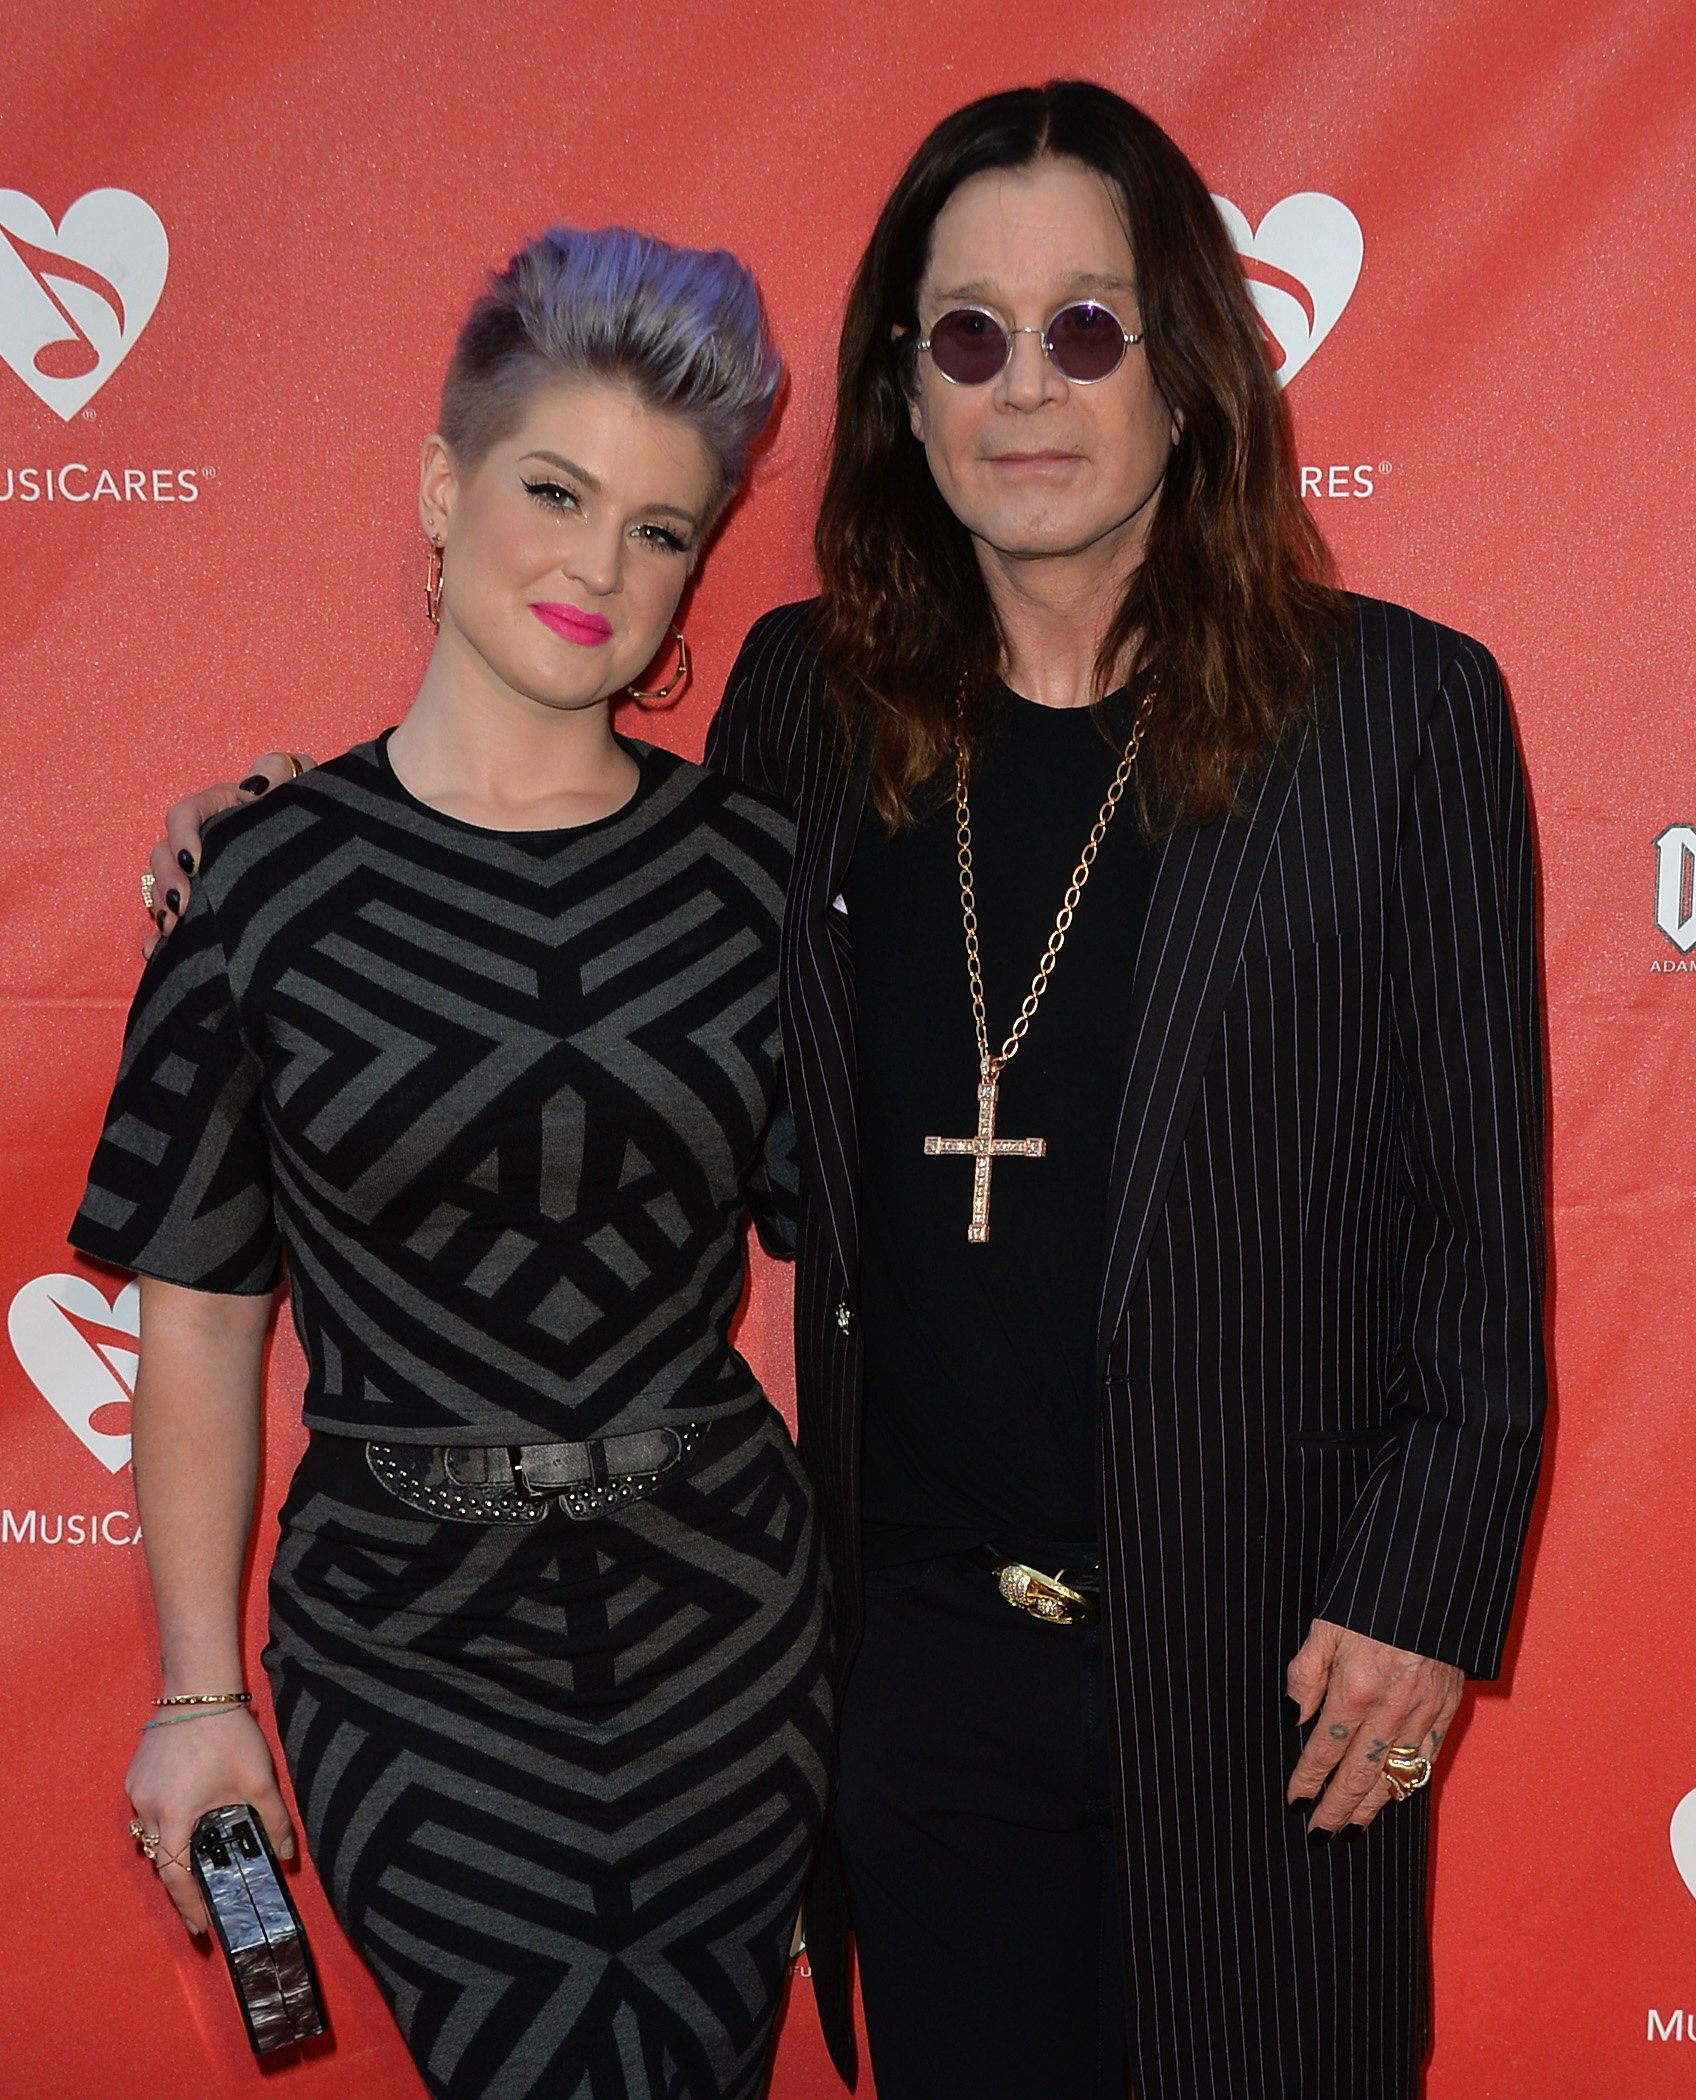 Kelly Osbourne with father Ozzy Osbourne during the 2014 Annual MusiCares MAP Fund Benefit Concert in Los Angeles California. | Photo: Getty Images